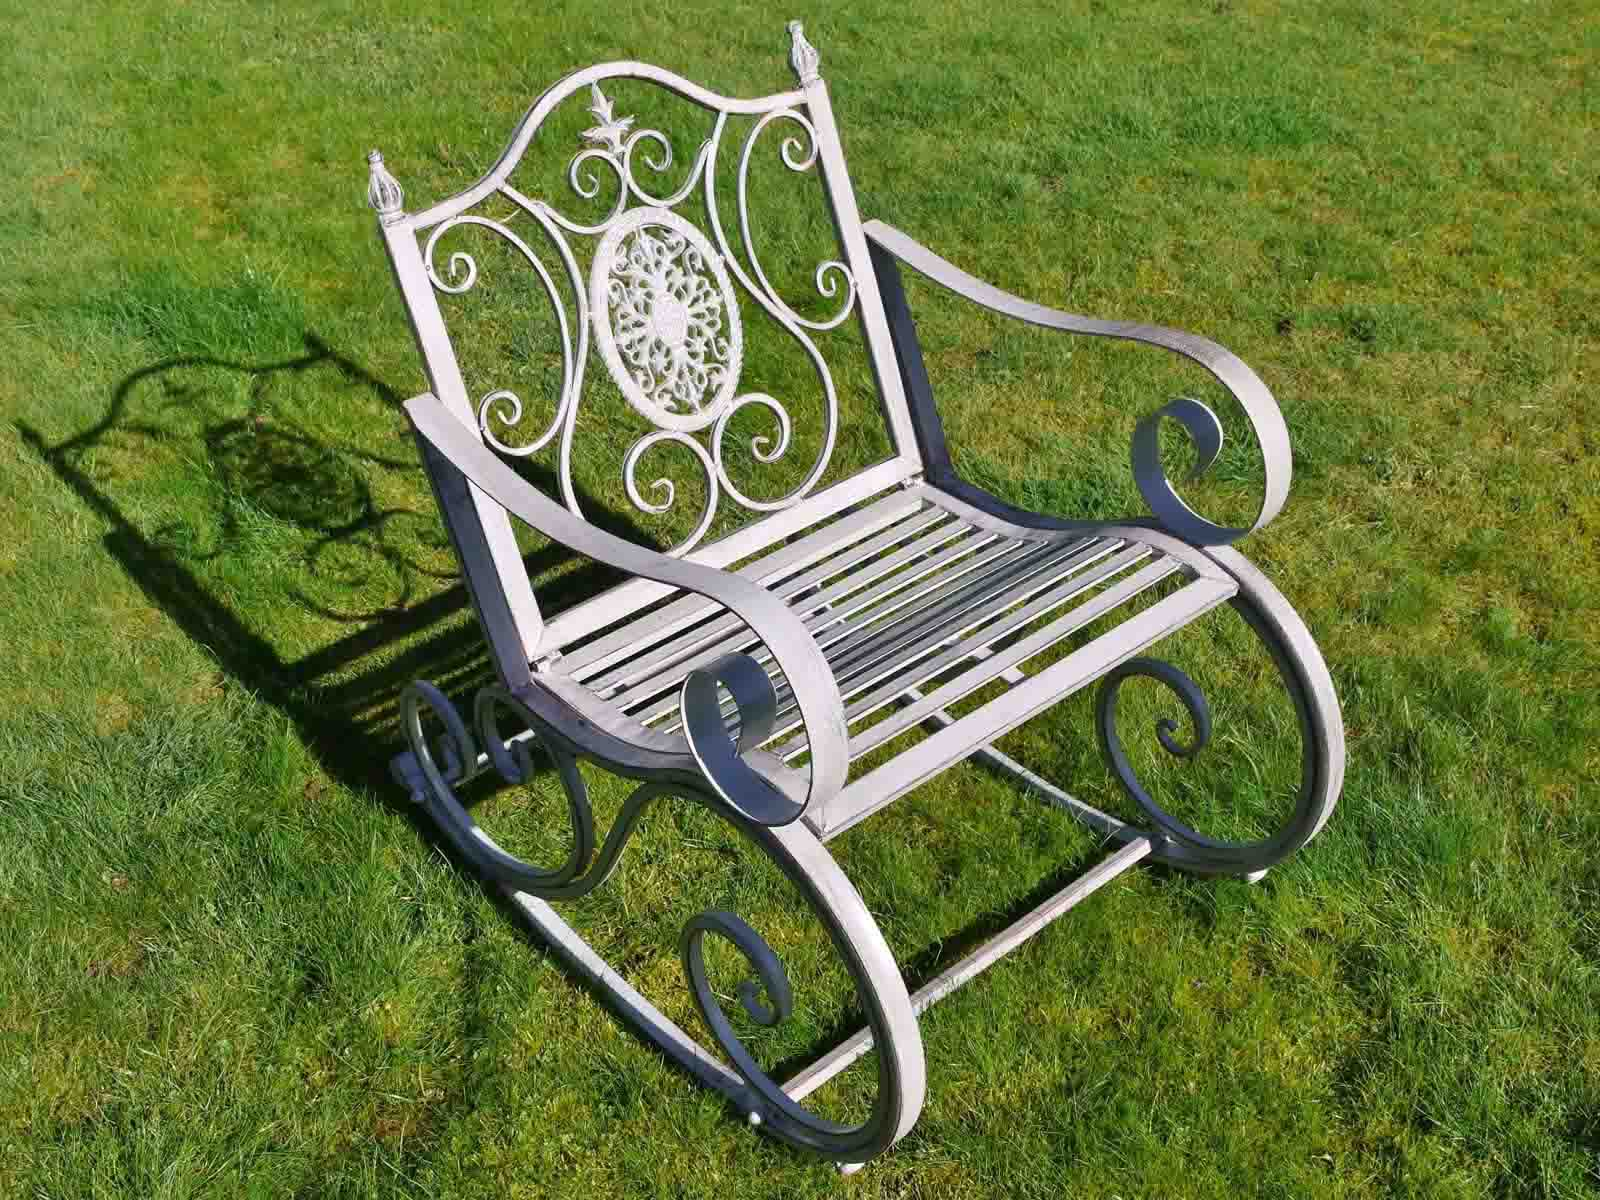 old fashioned rocking chairs chair cover rentals daytona beach fl antique grey metal